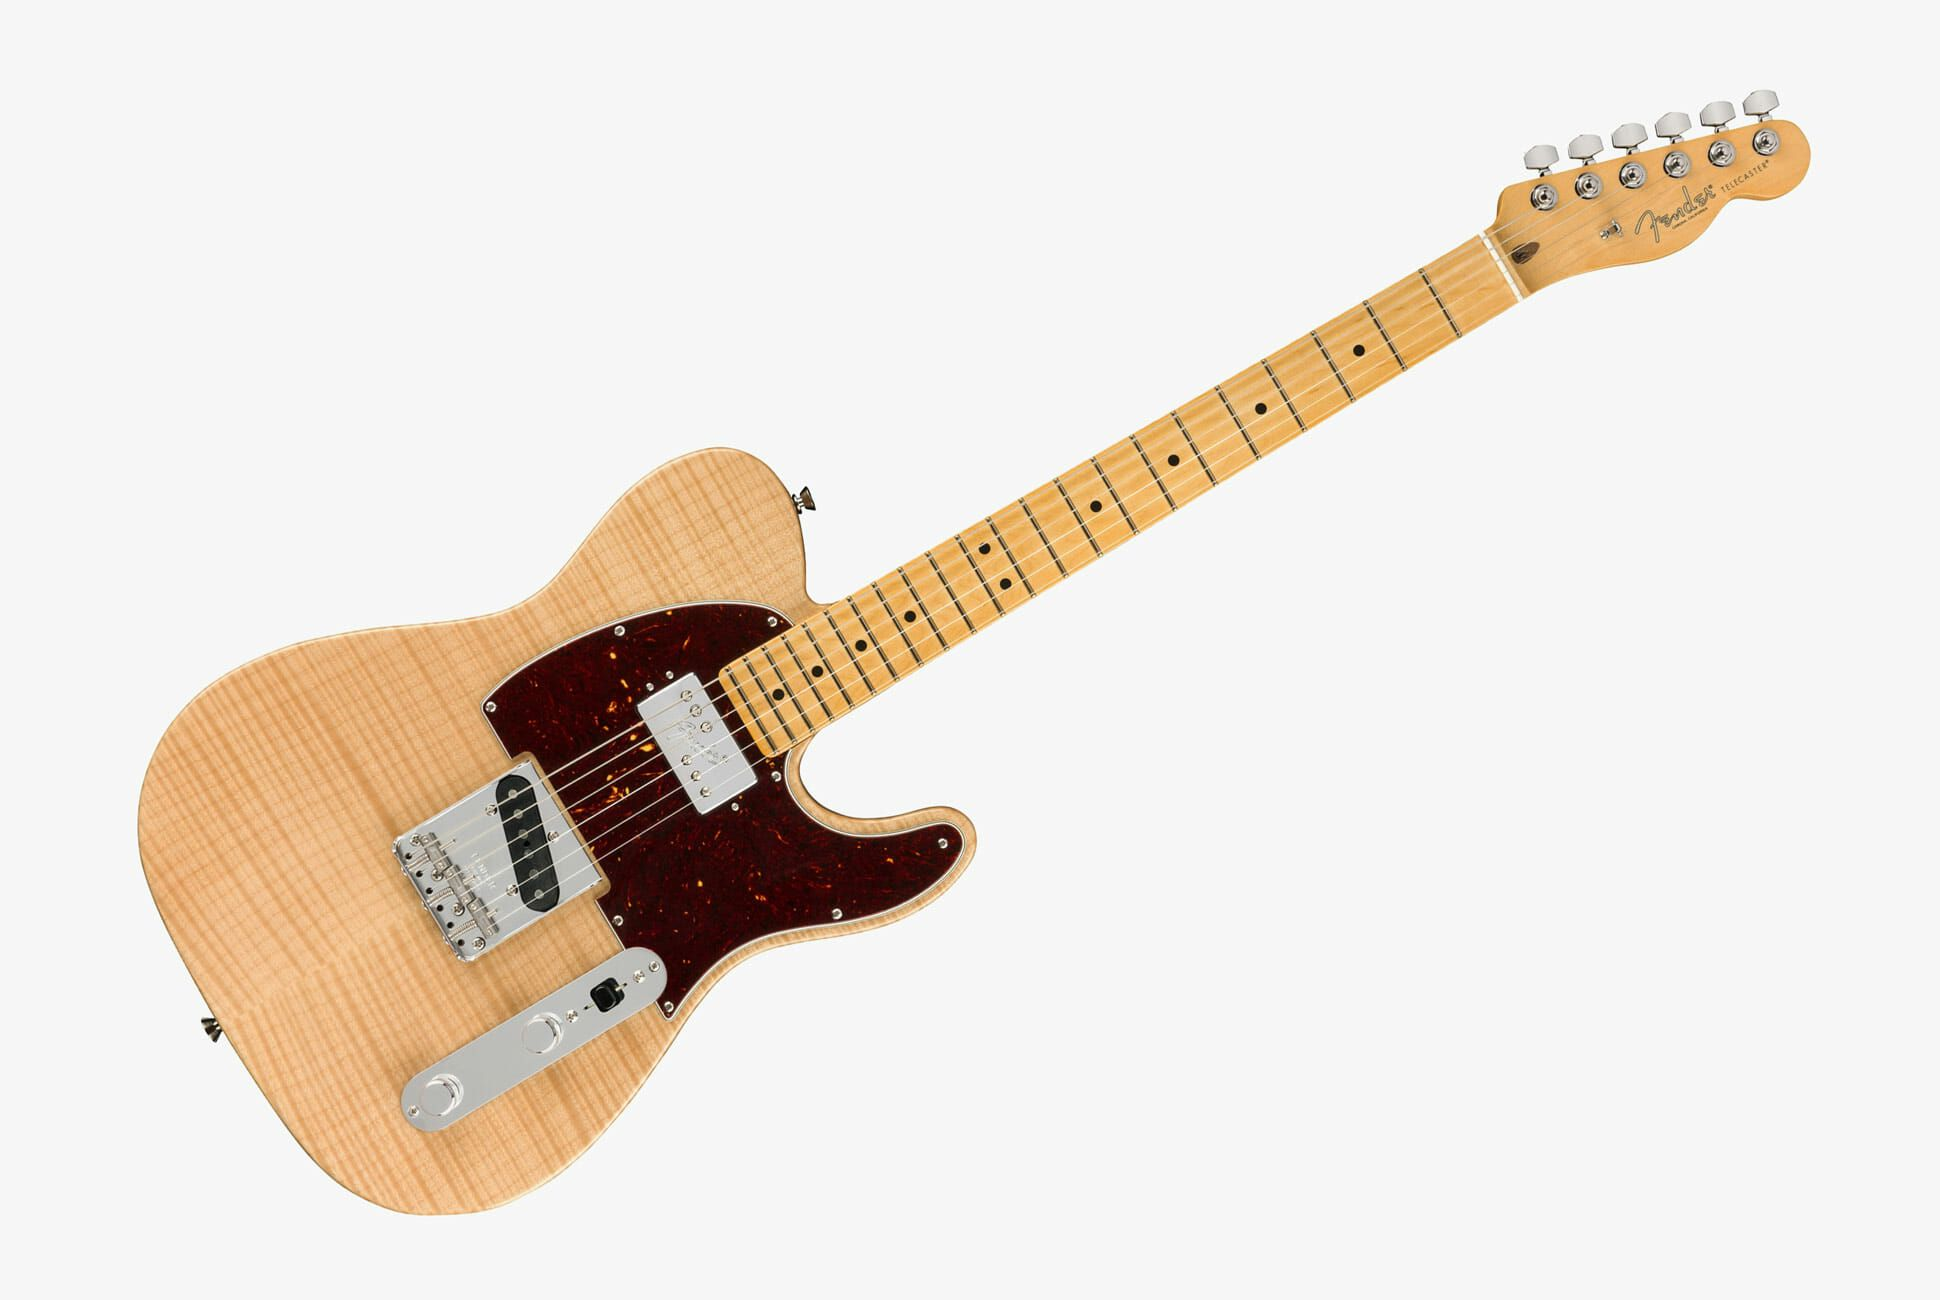 Fender-RARITIES-FLAME-MAPLE-TOP-CHAMBERED-TELECASTER-Gear-Patrol-Slide-1